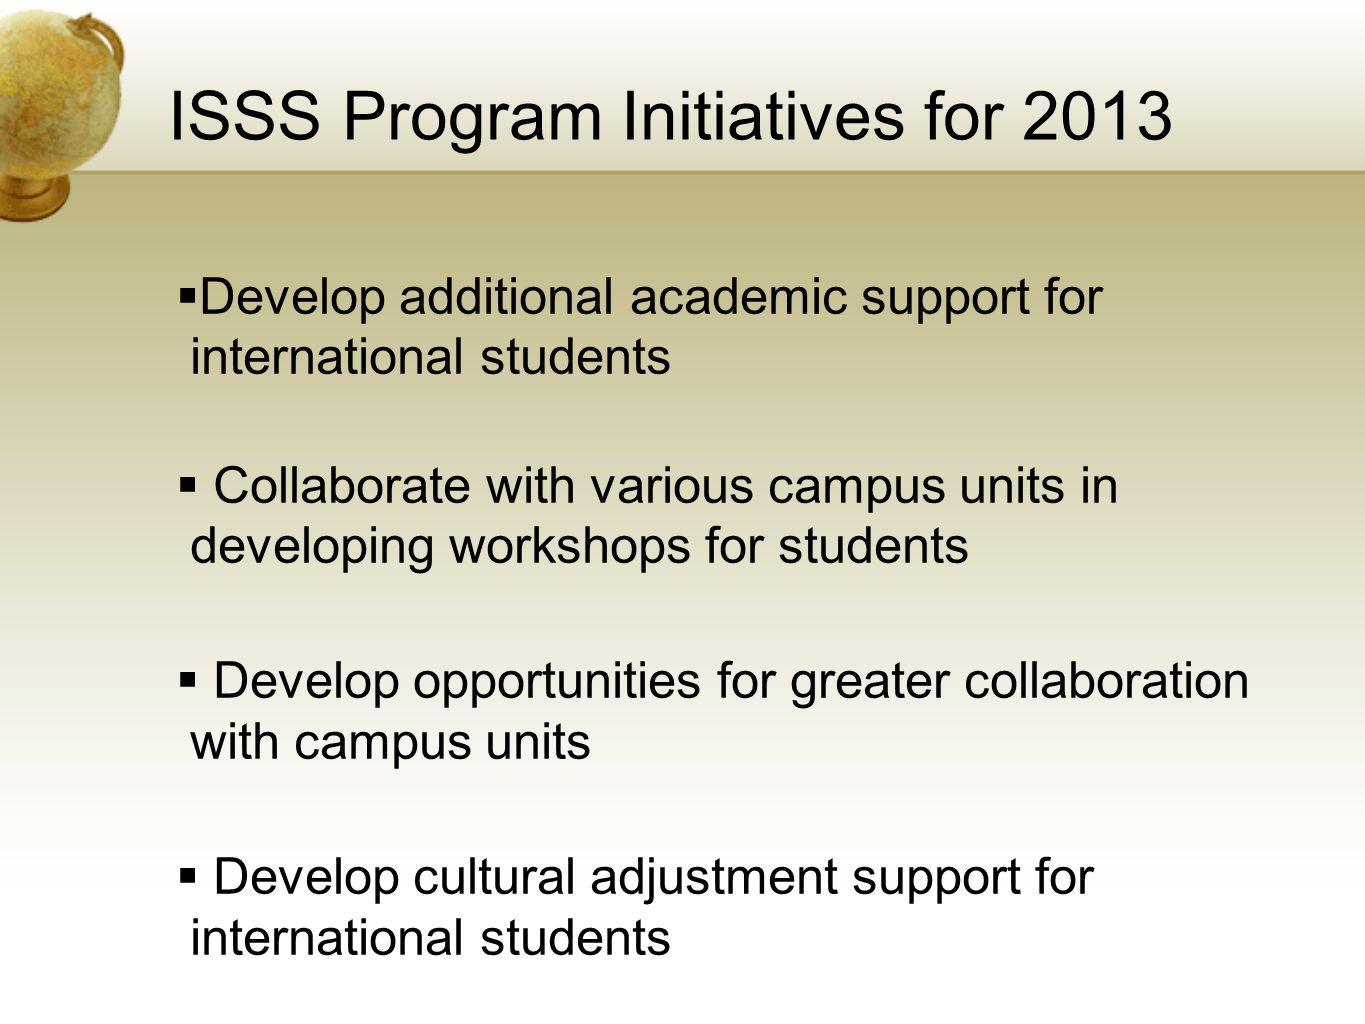 ISSS Program Initiatives for 2013  Develop additional academic support for international students  Collaborate with various campus units in developing workshops for students  Develop opportunities for greater collaboration with campus units  Develop cultural adjustment support for international students